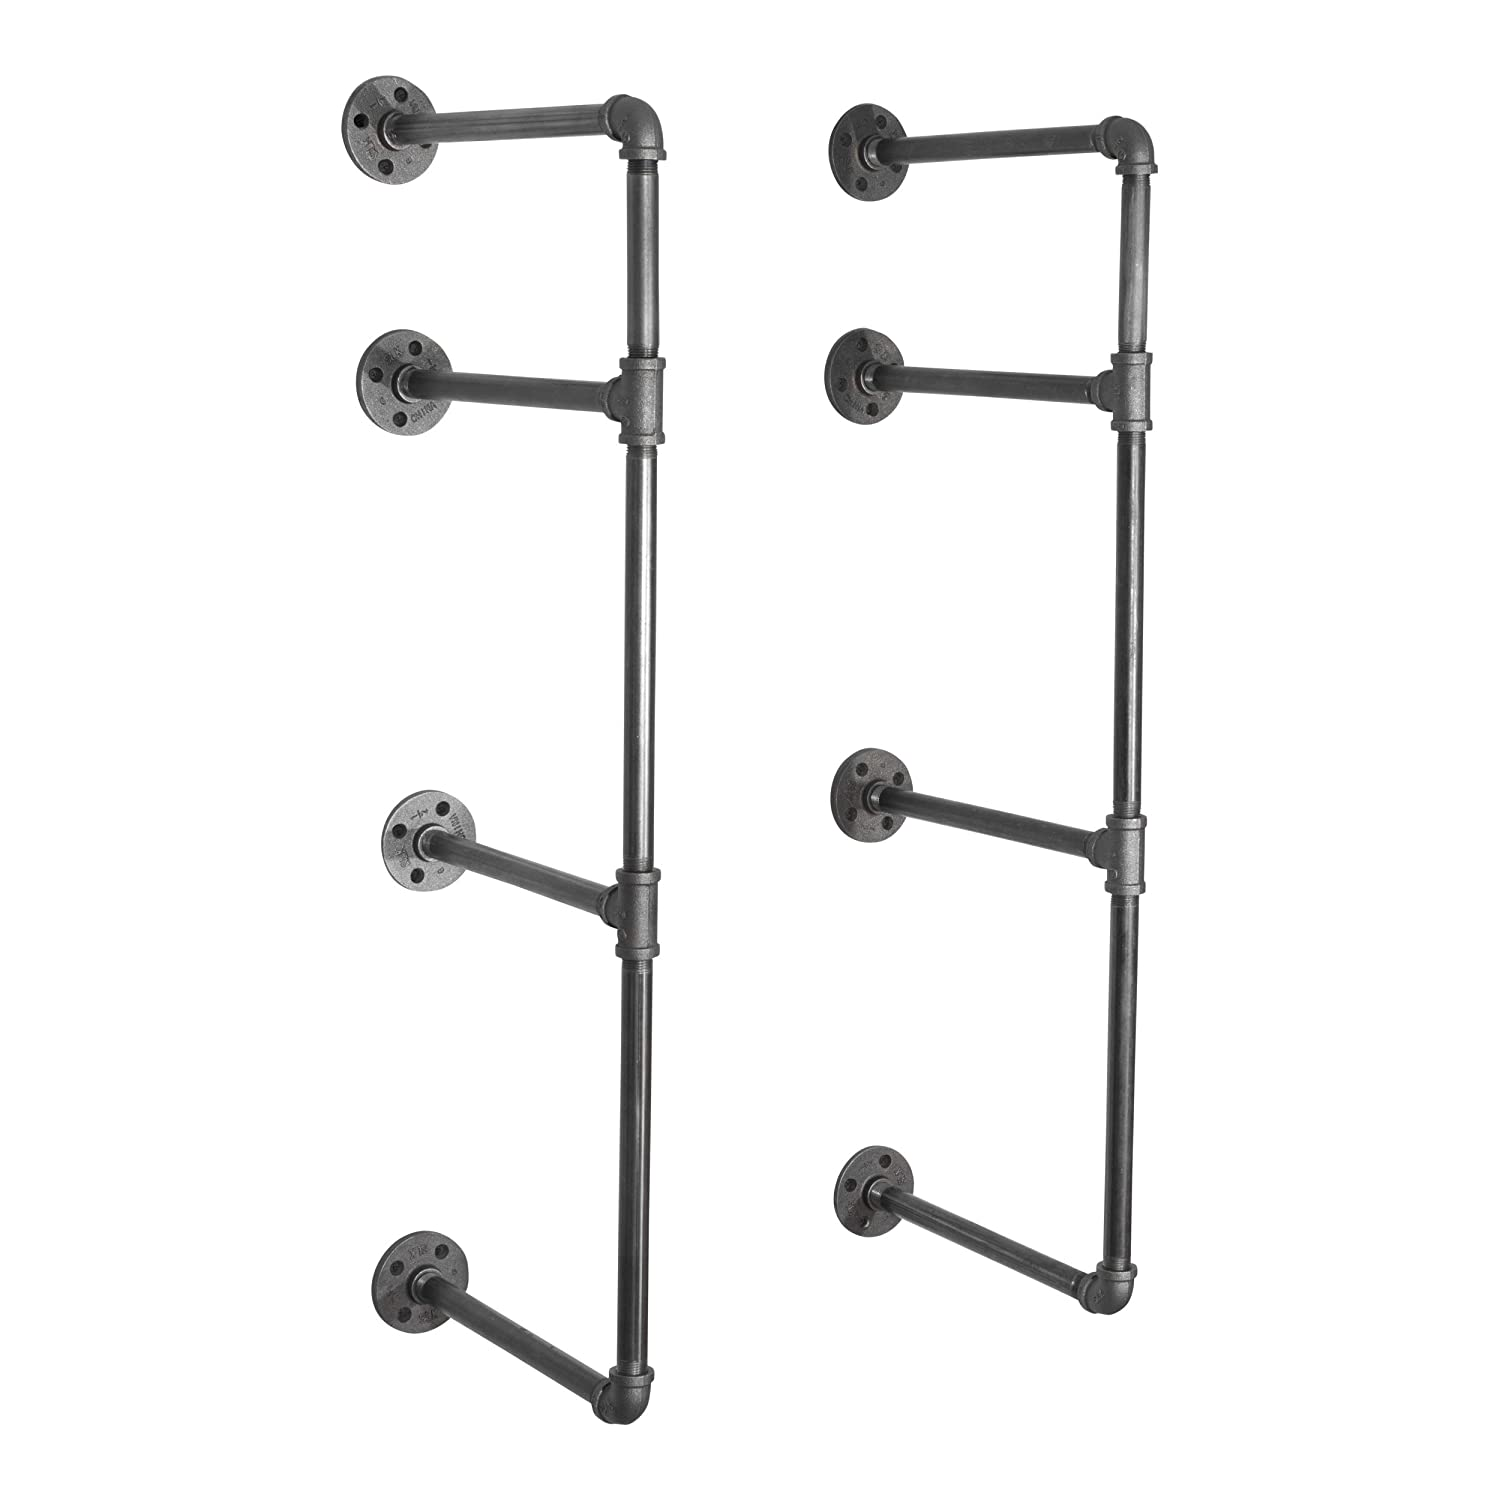 Pipe Decor 3 Tier Industrial Shelves, Vintage Iron DIY Shelving Unit, Rustic Wall Mounted Hanging Bookshelf, Perfect for Garage or Kitchen Storage, Heavy Duty Floating Black Metal Rack Sturdy 35 inch